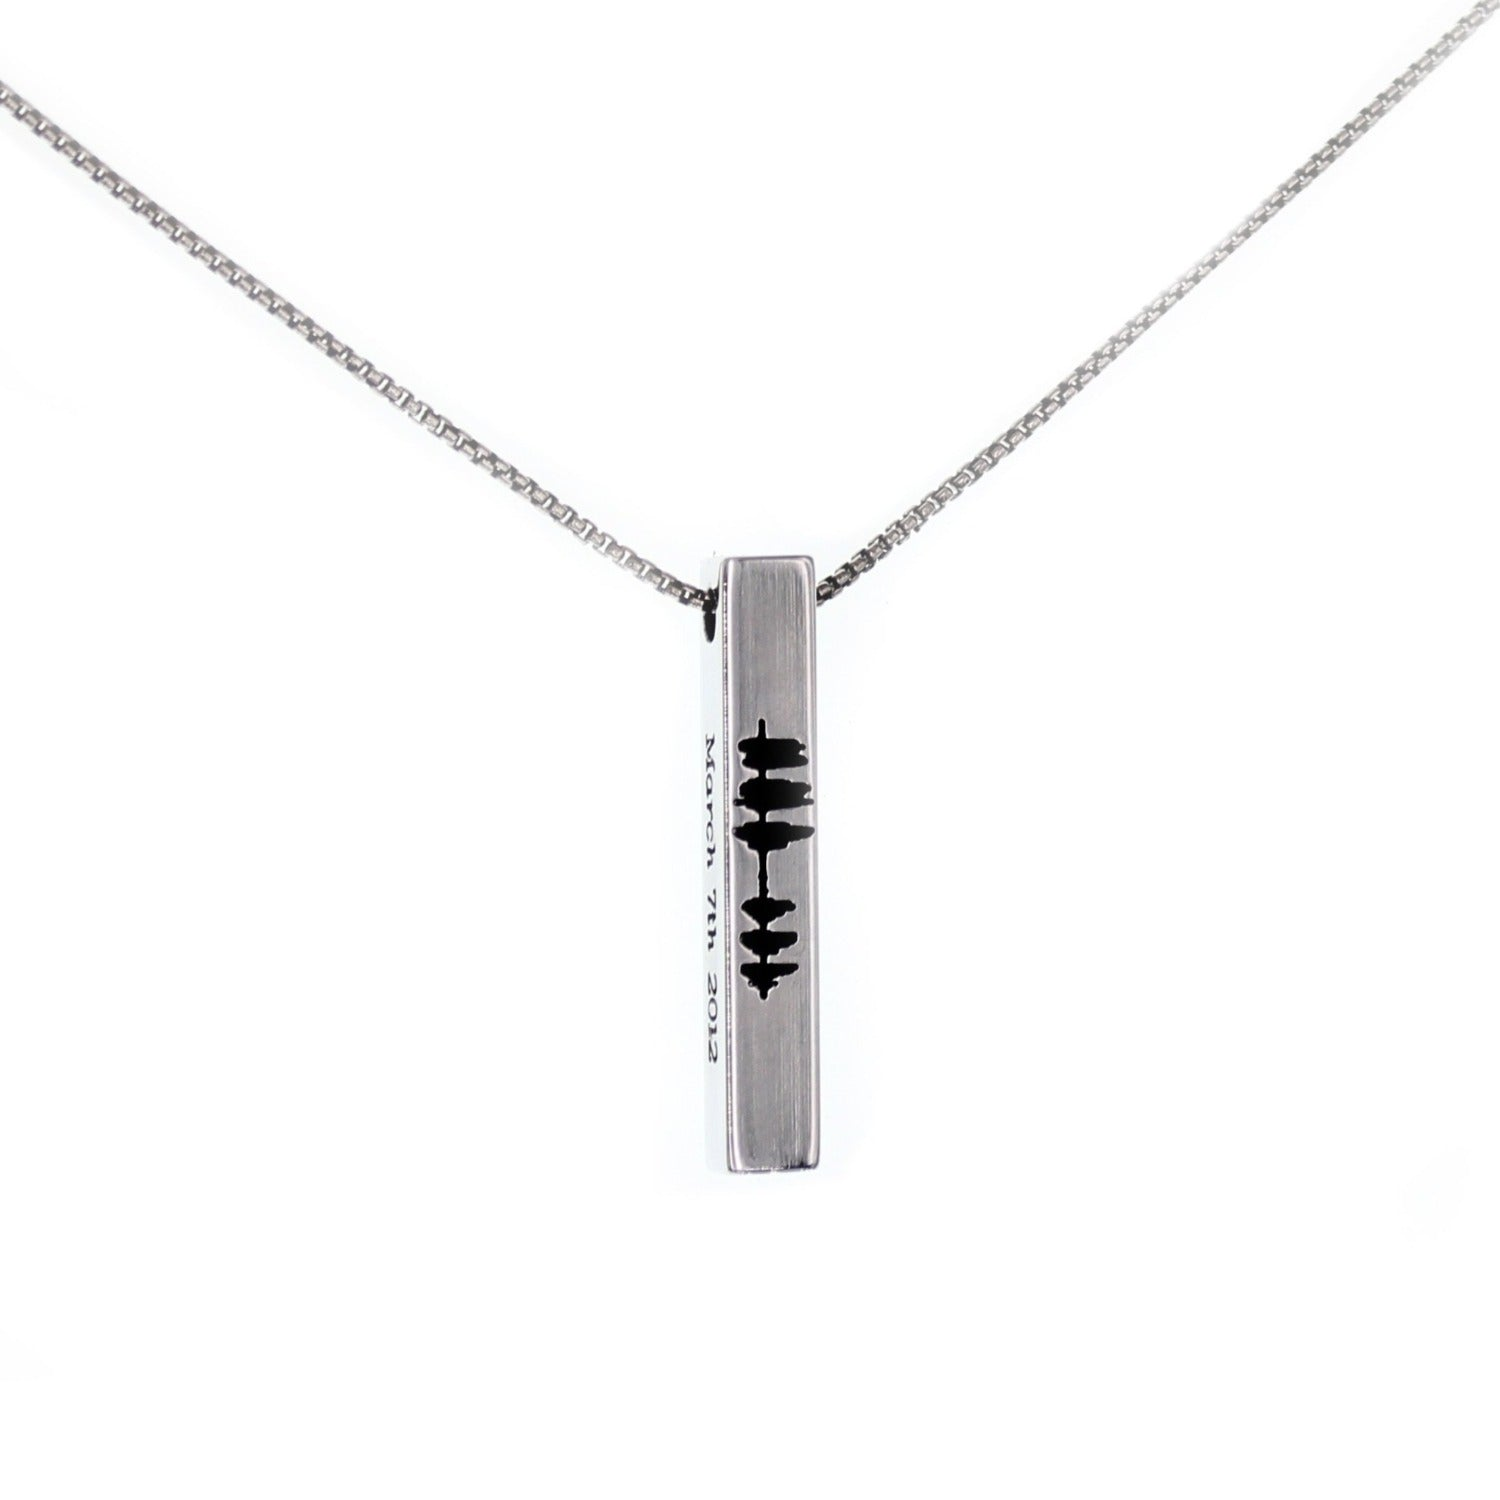 Sound Wave Vertical Bar Necklace - Silver Tone - Love It Personalized